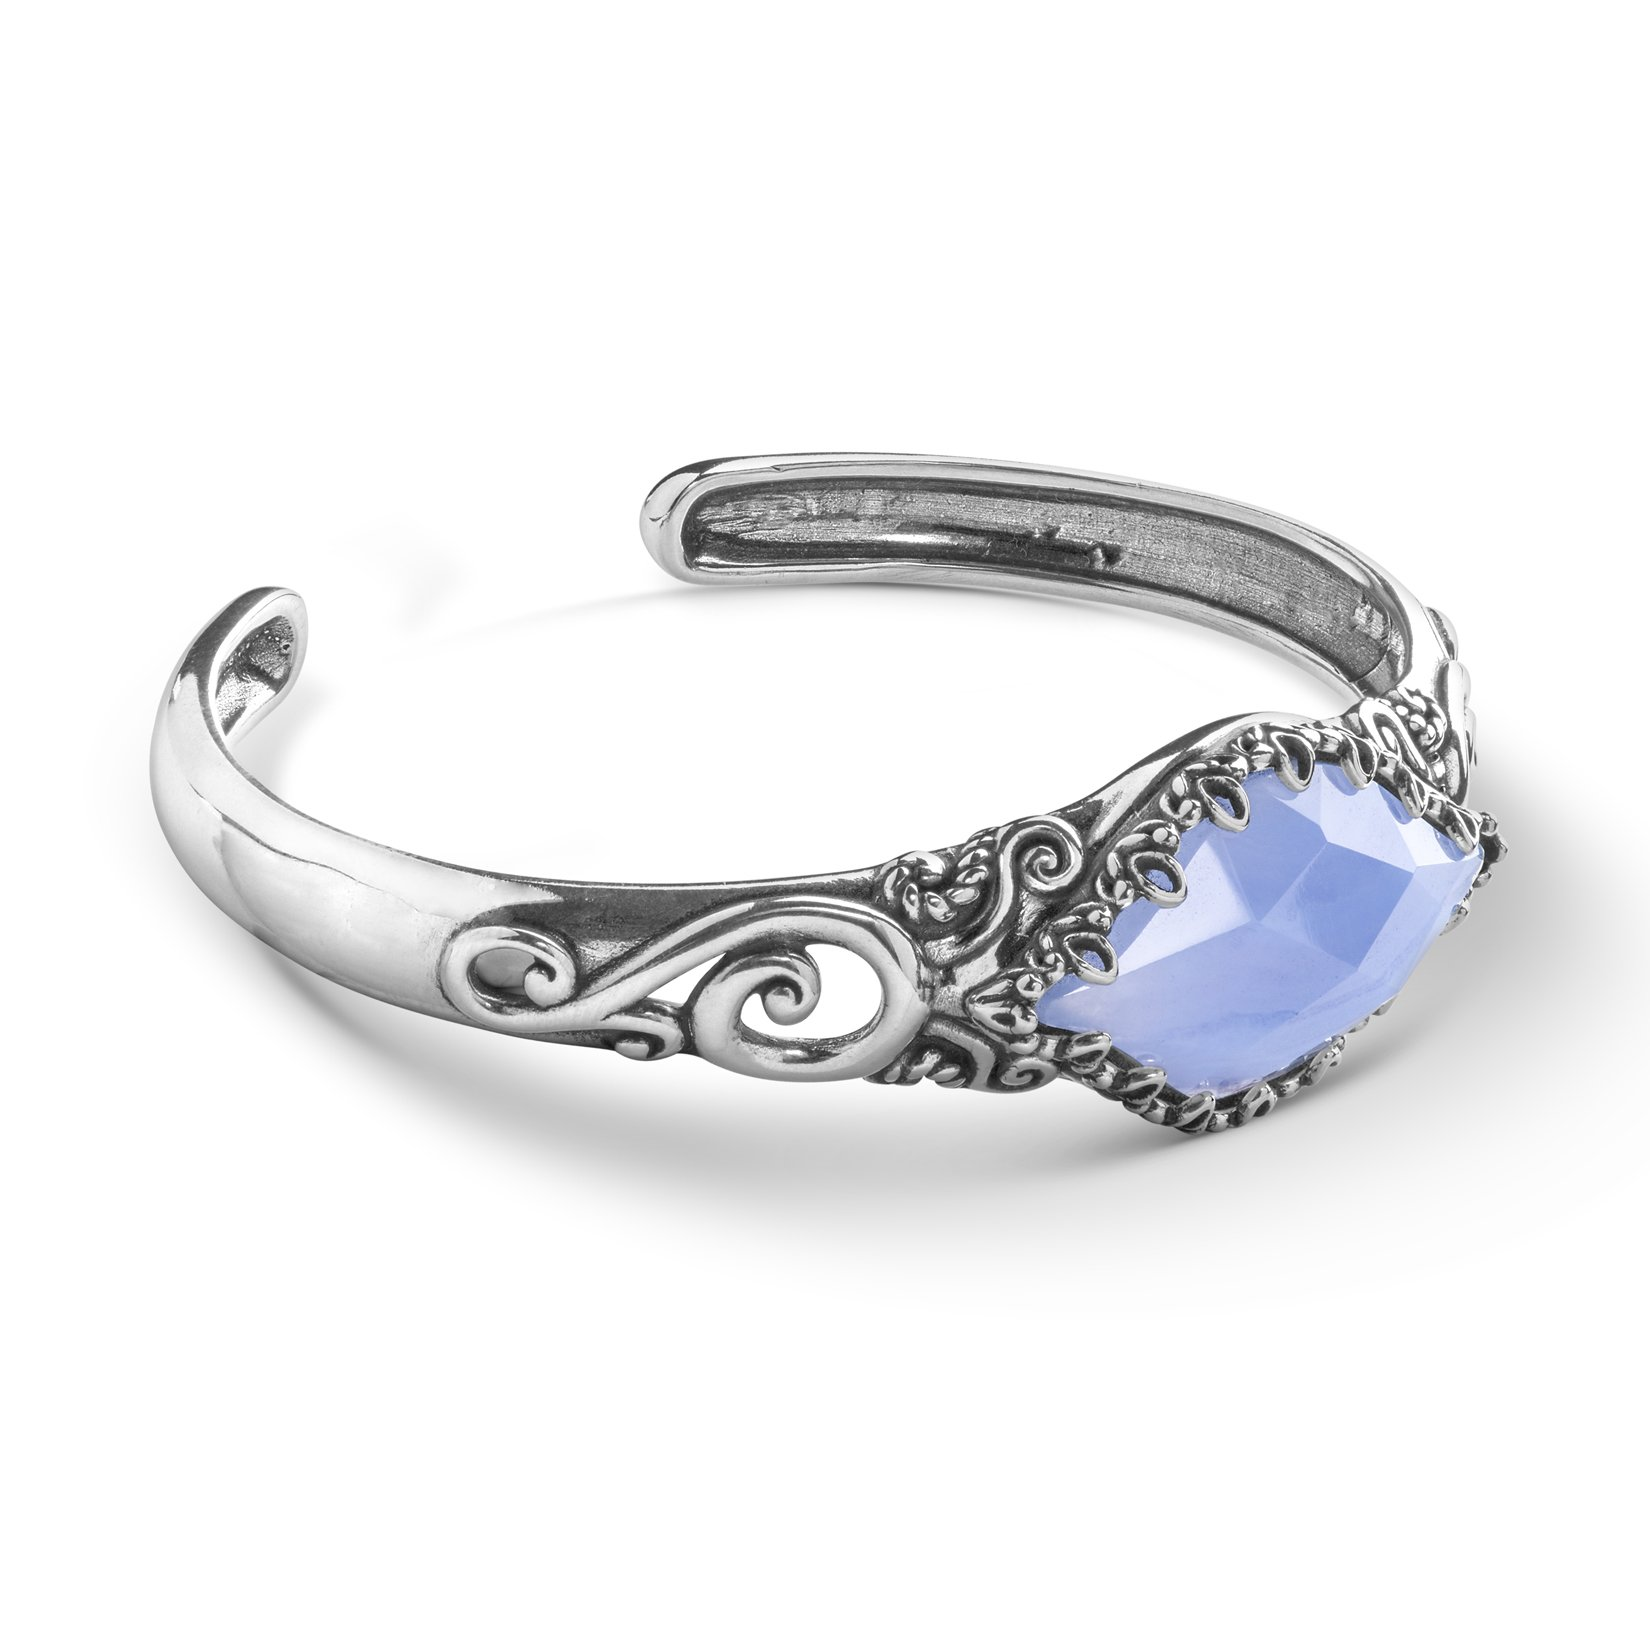 Carolyn Pollack Sterling Silver Blue Lace Agate Gemstone Scroll and Floral Filigree Cuff Bracelet Size Medium